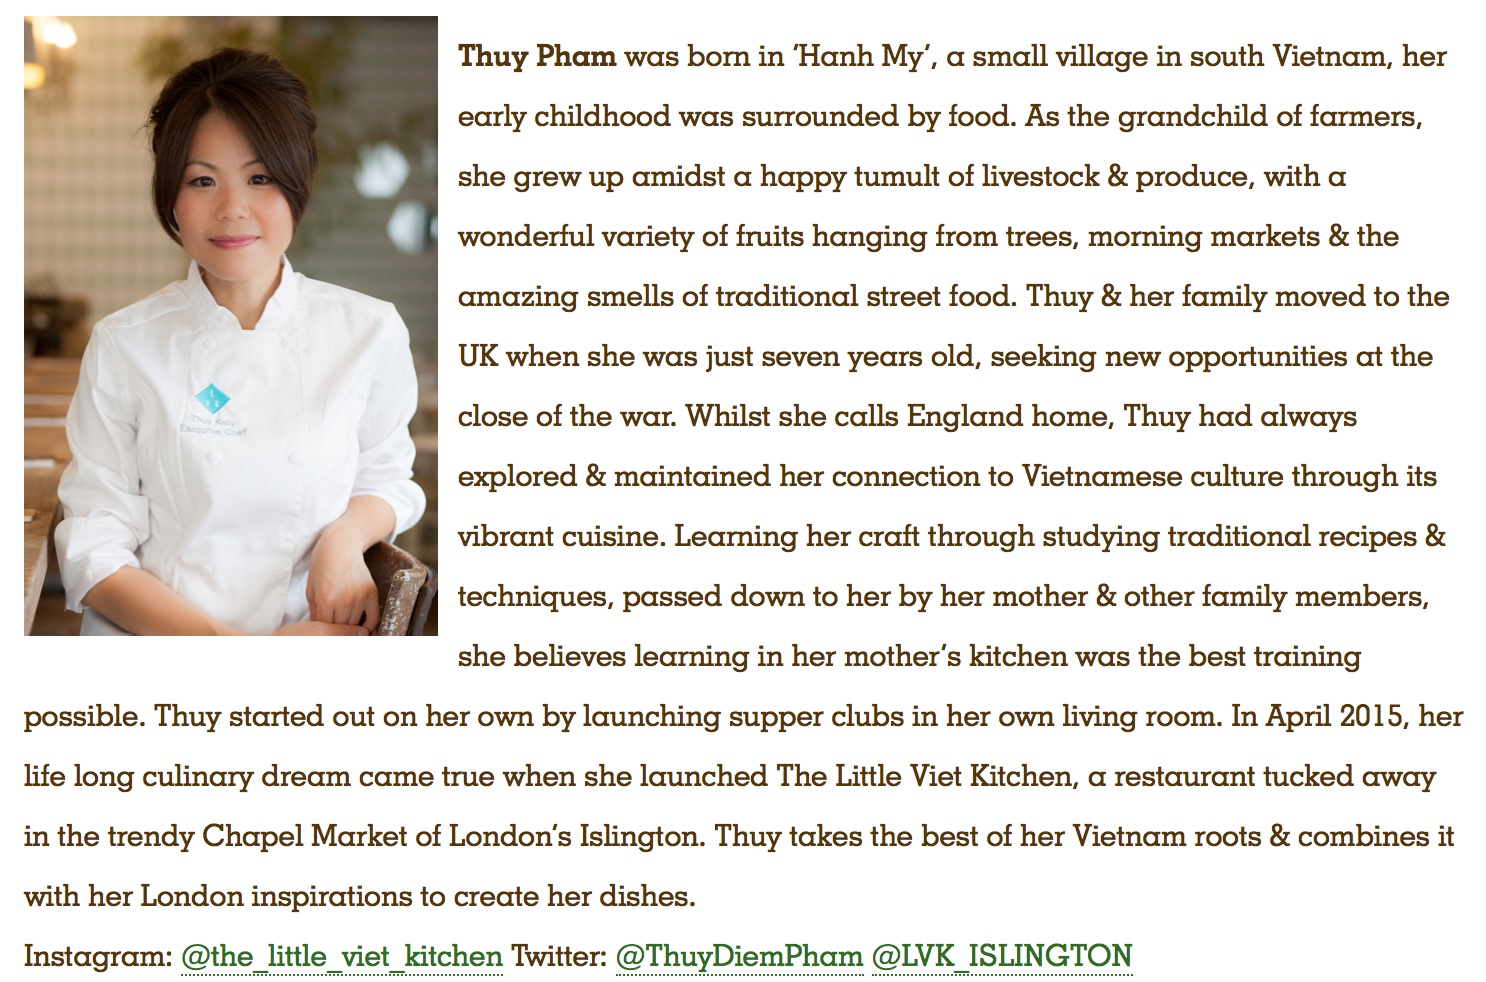 Thuy will be cooking at the Aldeburgh Food & Drink Festival this September! Drop by to try some of her delicious cooking.  https://www.aldeburghfoodanddrink.co.uk/visit-suffolk/visiting-chefs-2017